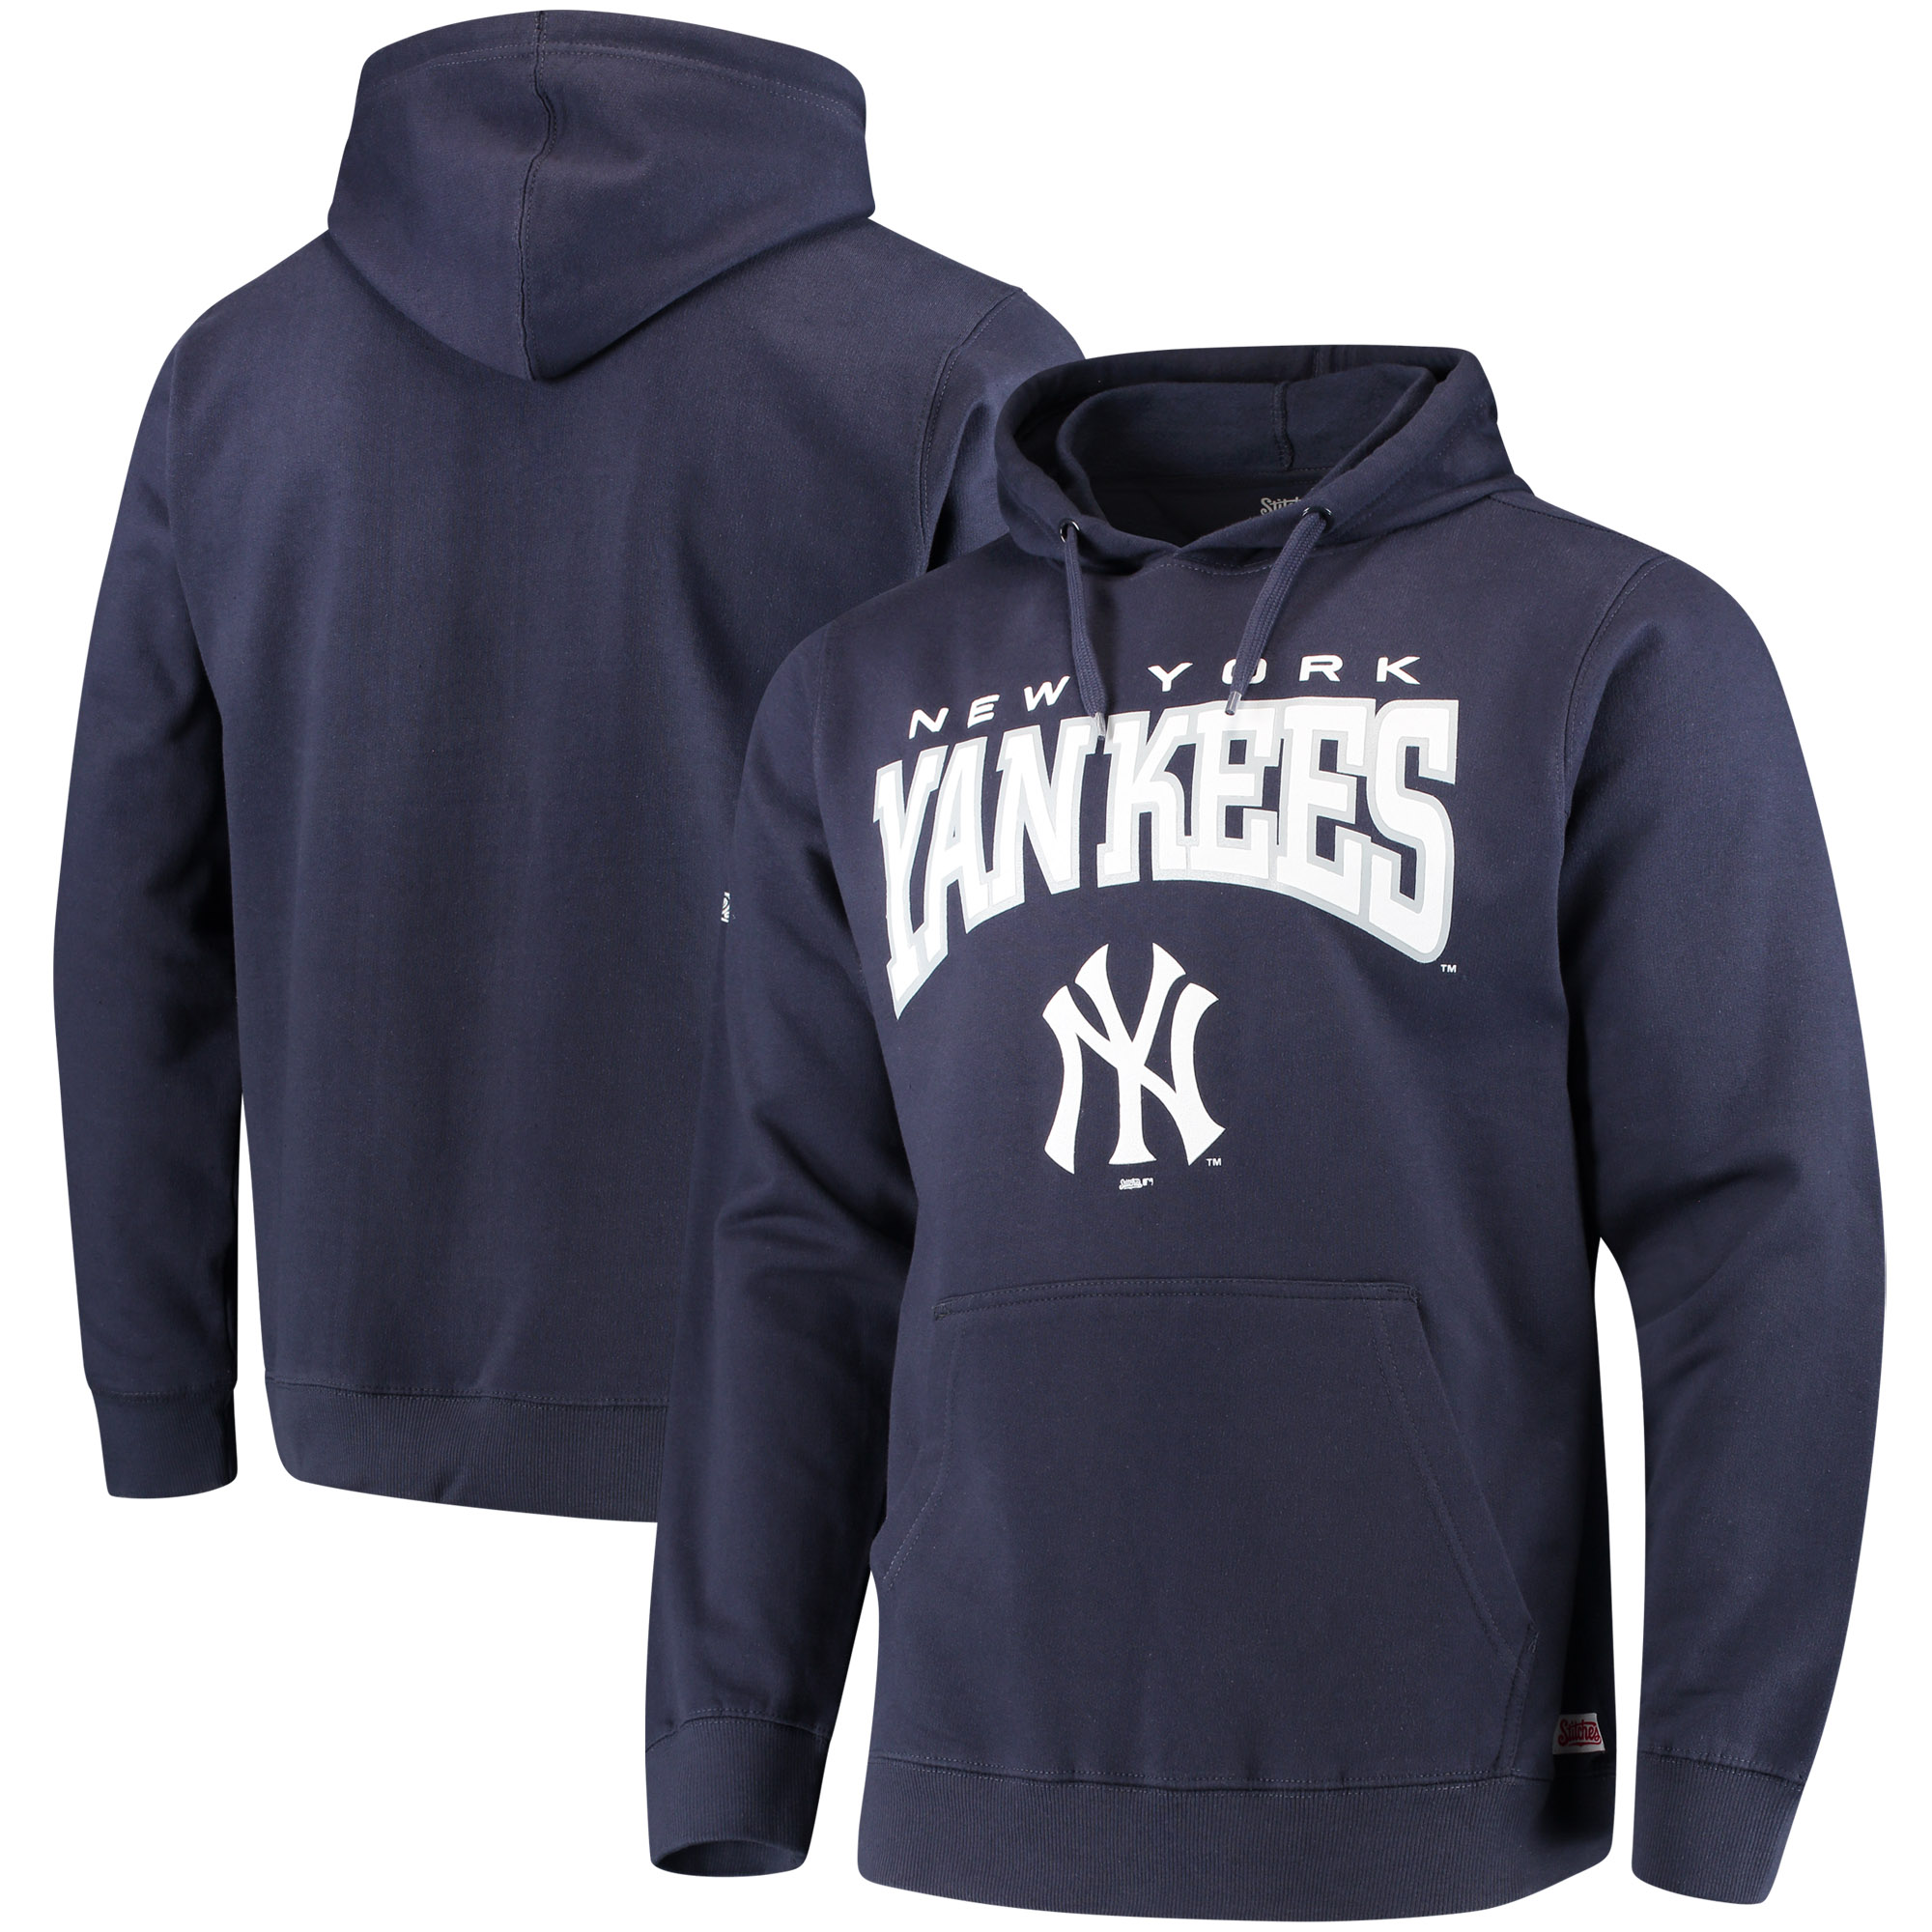 New York Yankees Stitches Team Pullover Hoodie - Navy